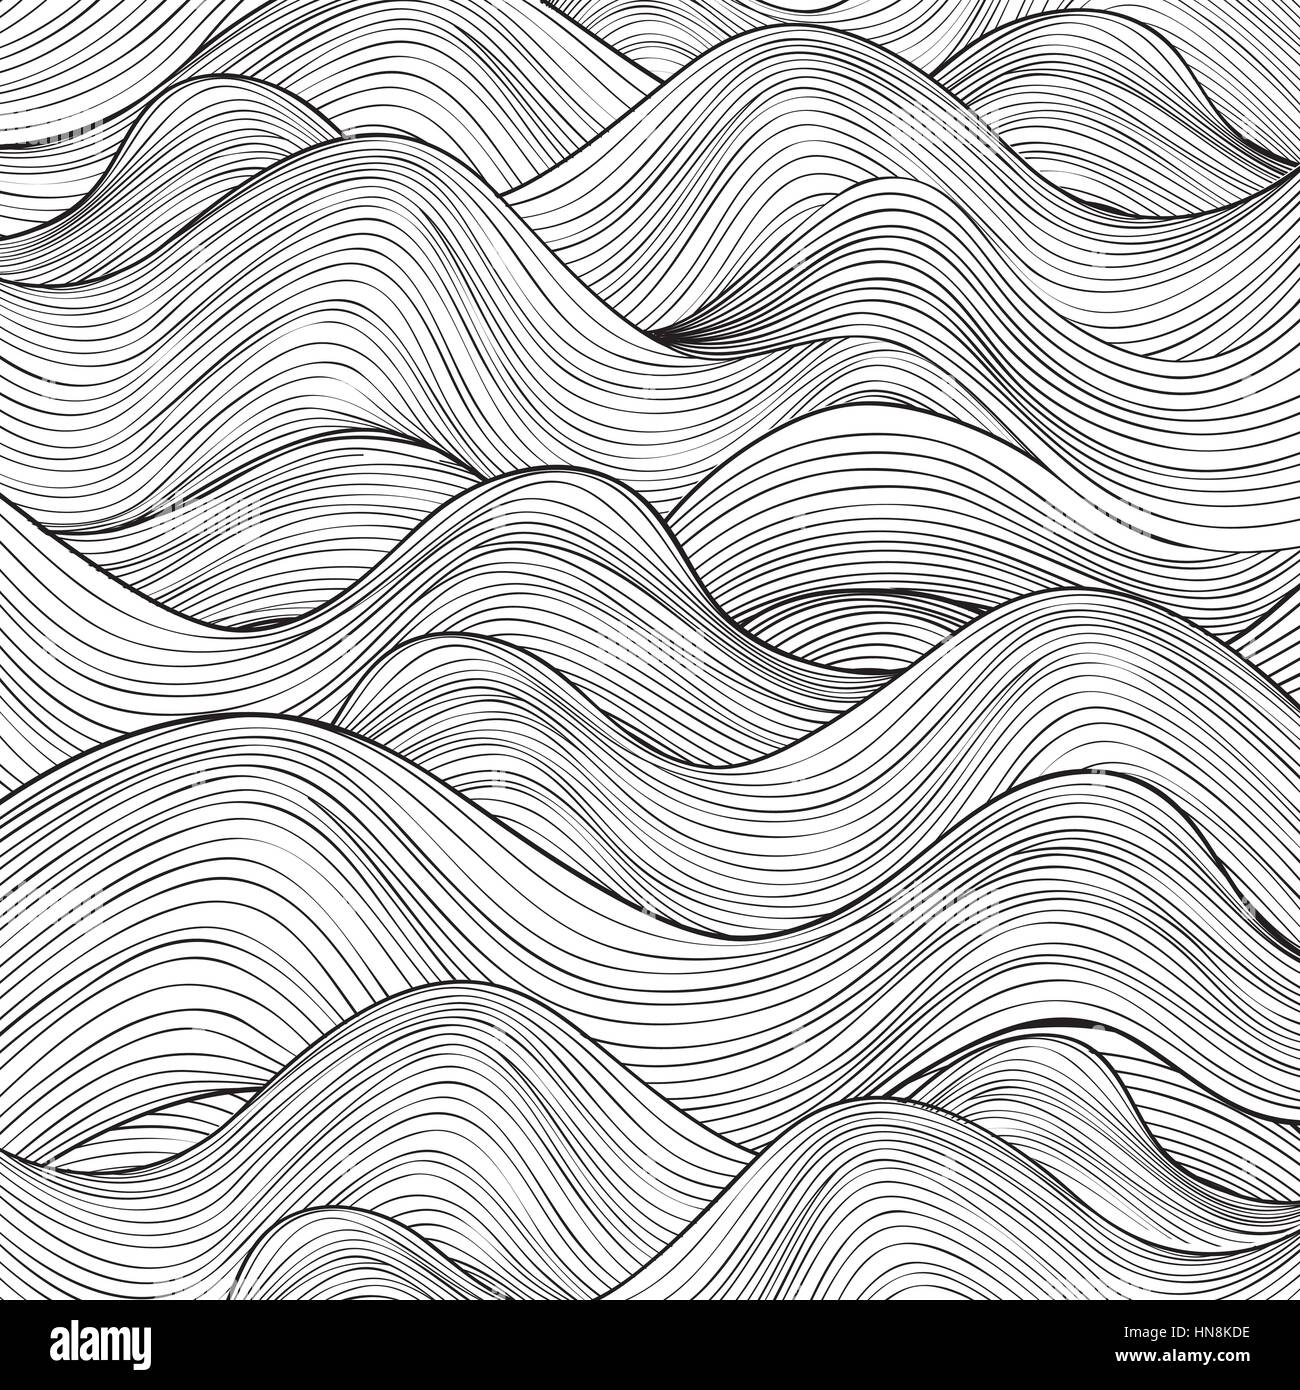 Wave pattern. Geometric texture. Abstract background. - Stock Image